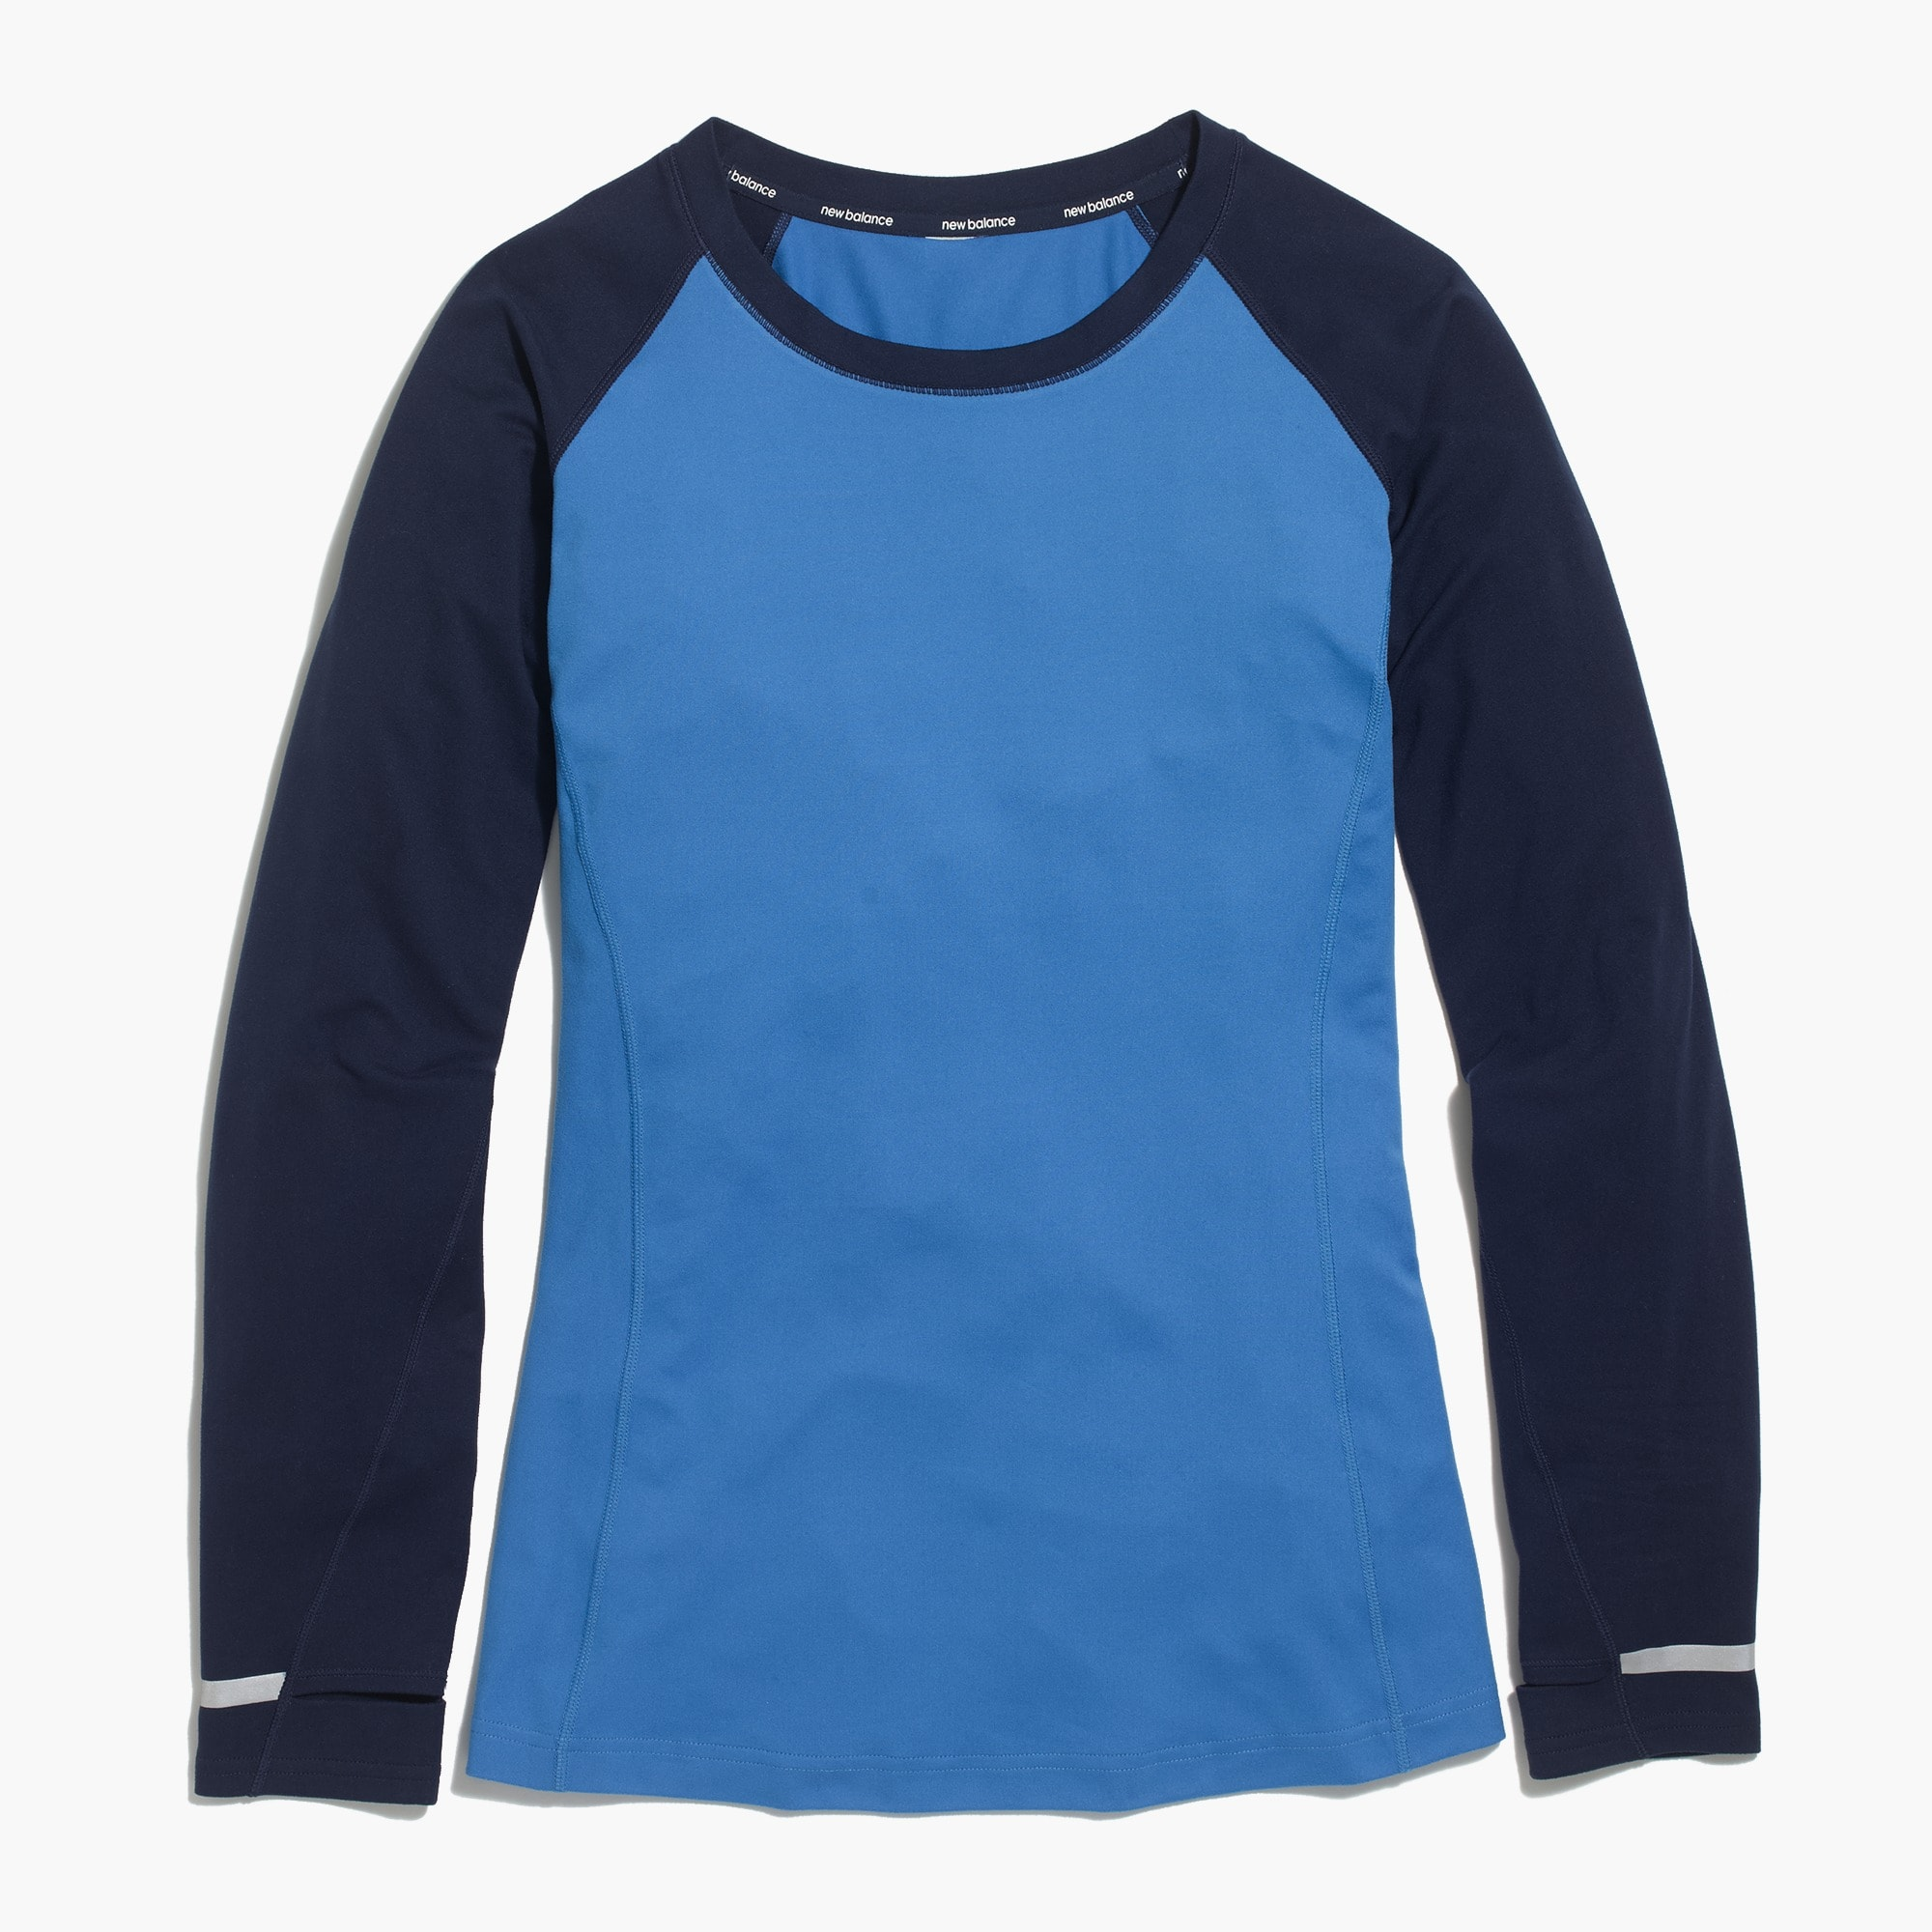 New Balance® for J.Crew in-transit long-sleeve T-shirt in colorblock